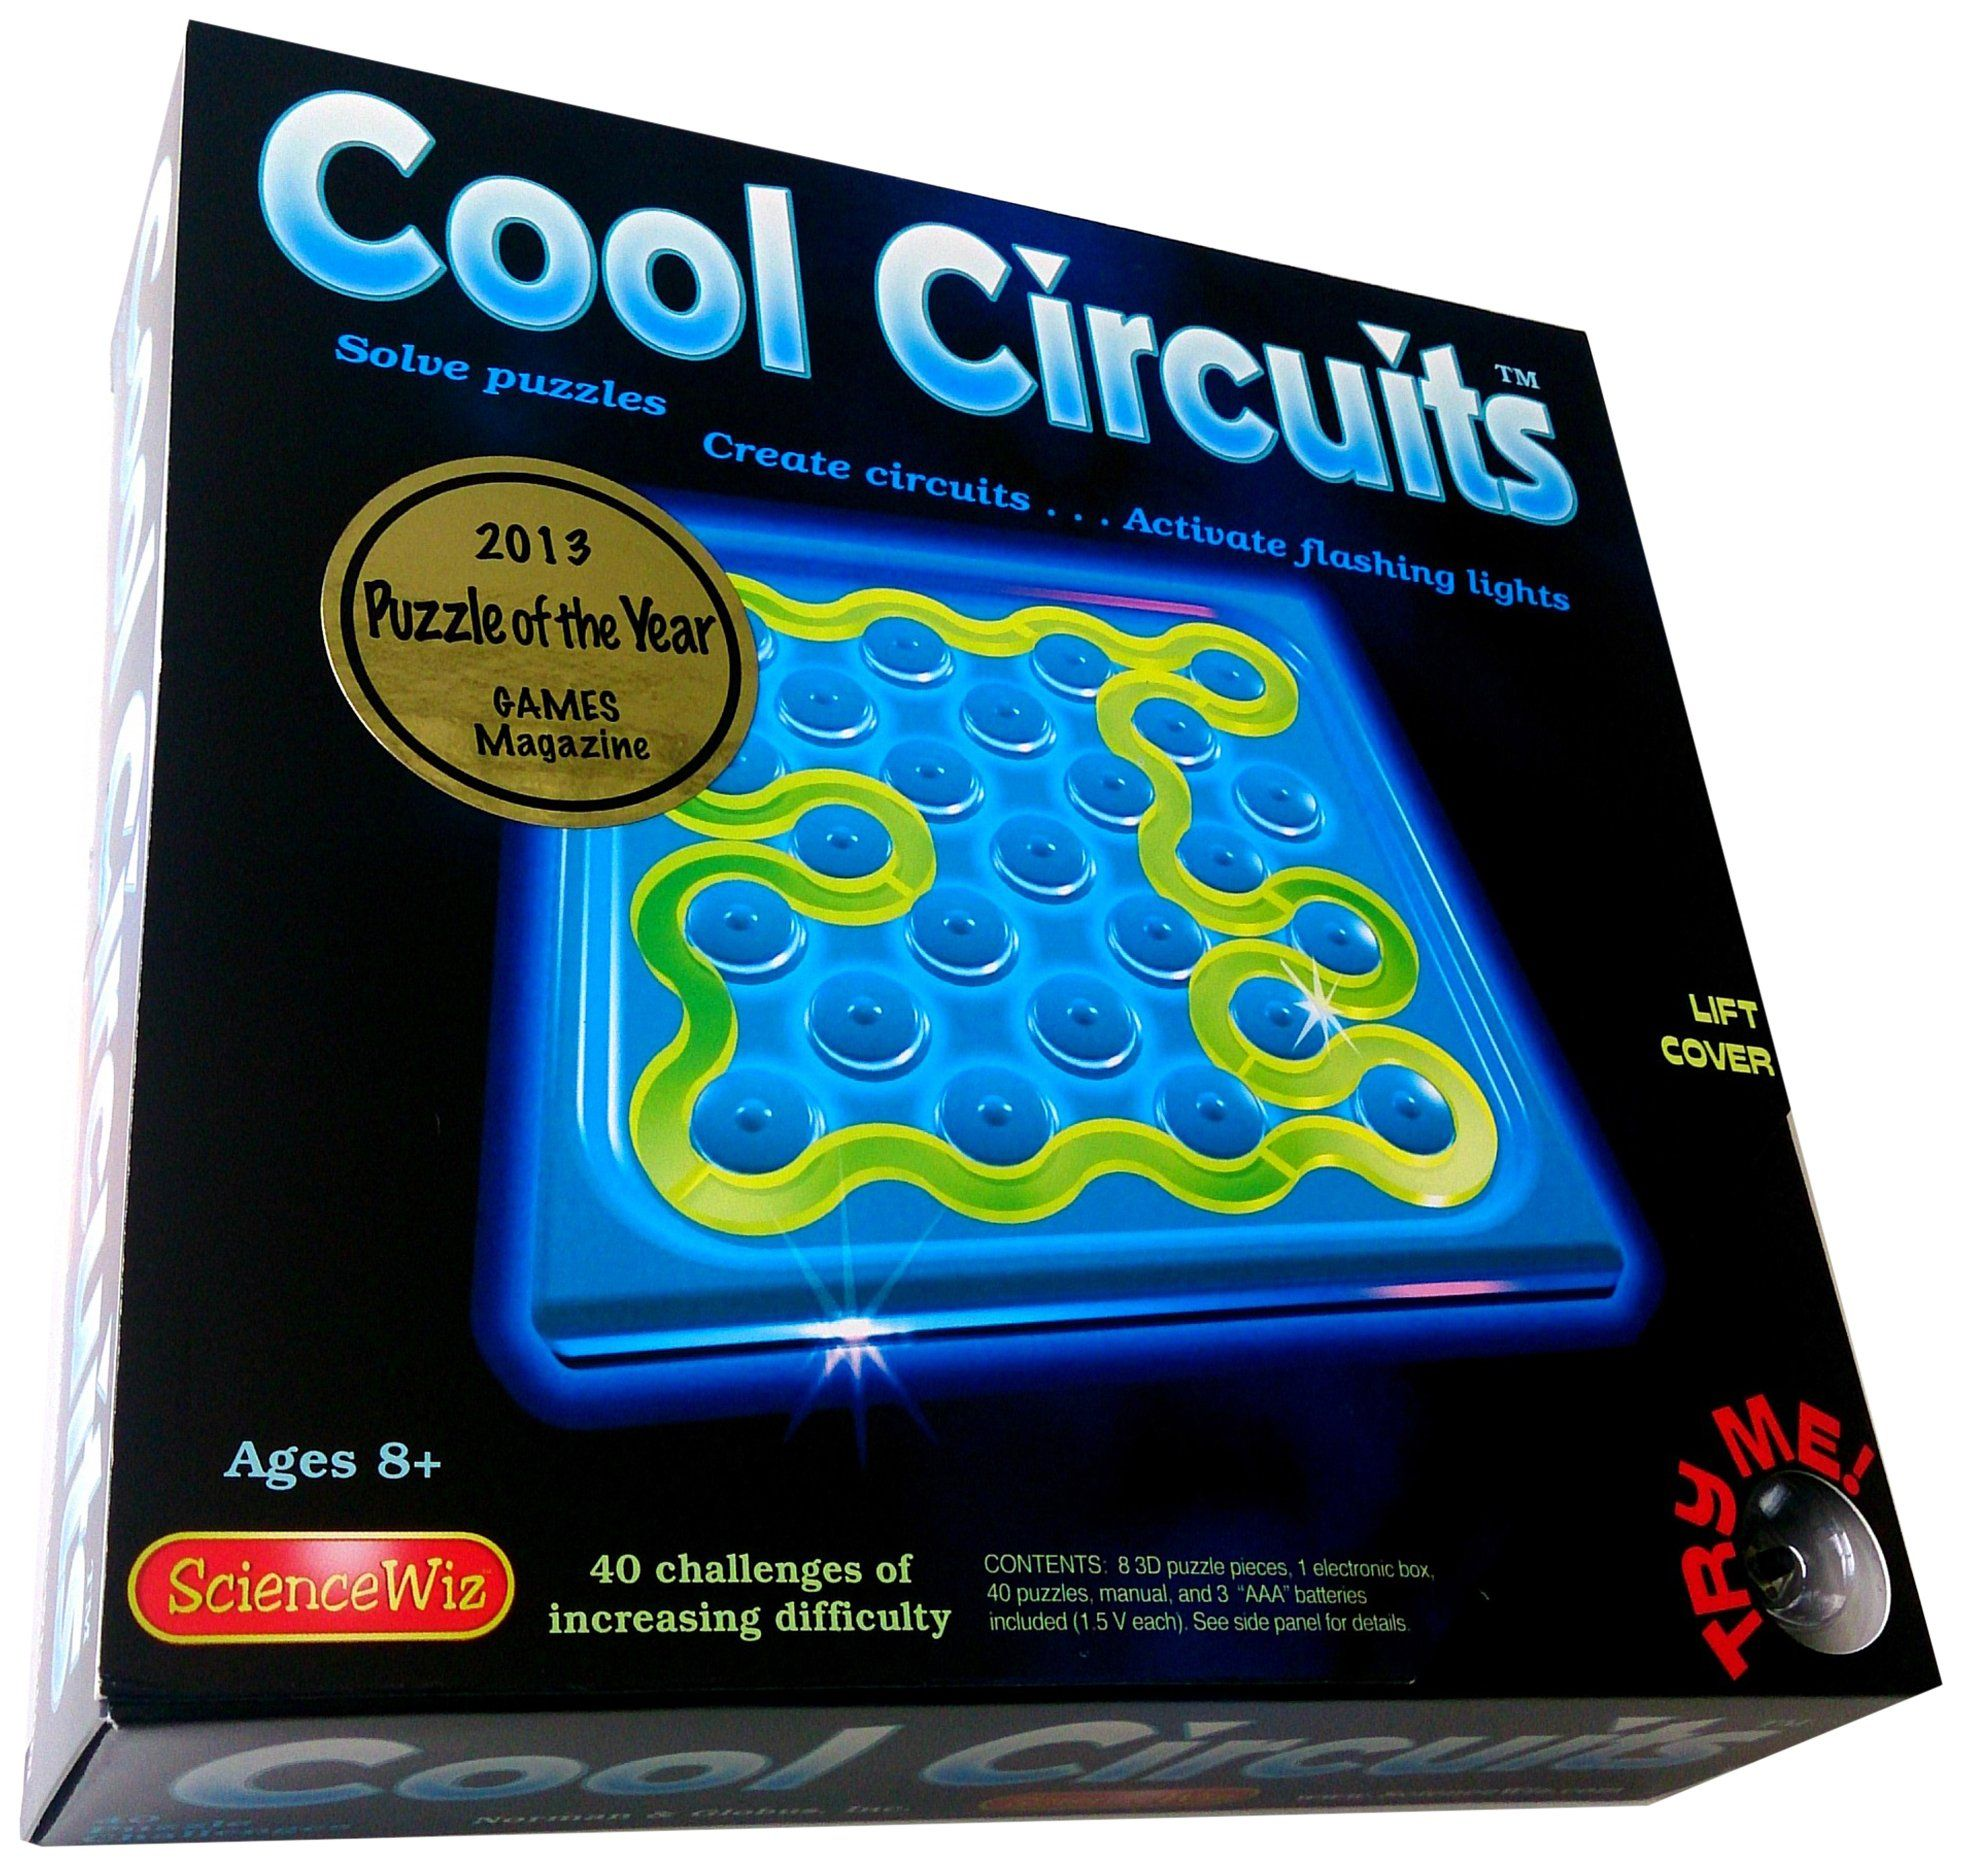 Amazon Sciencewiz Cool Circuits Toys & Games